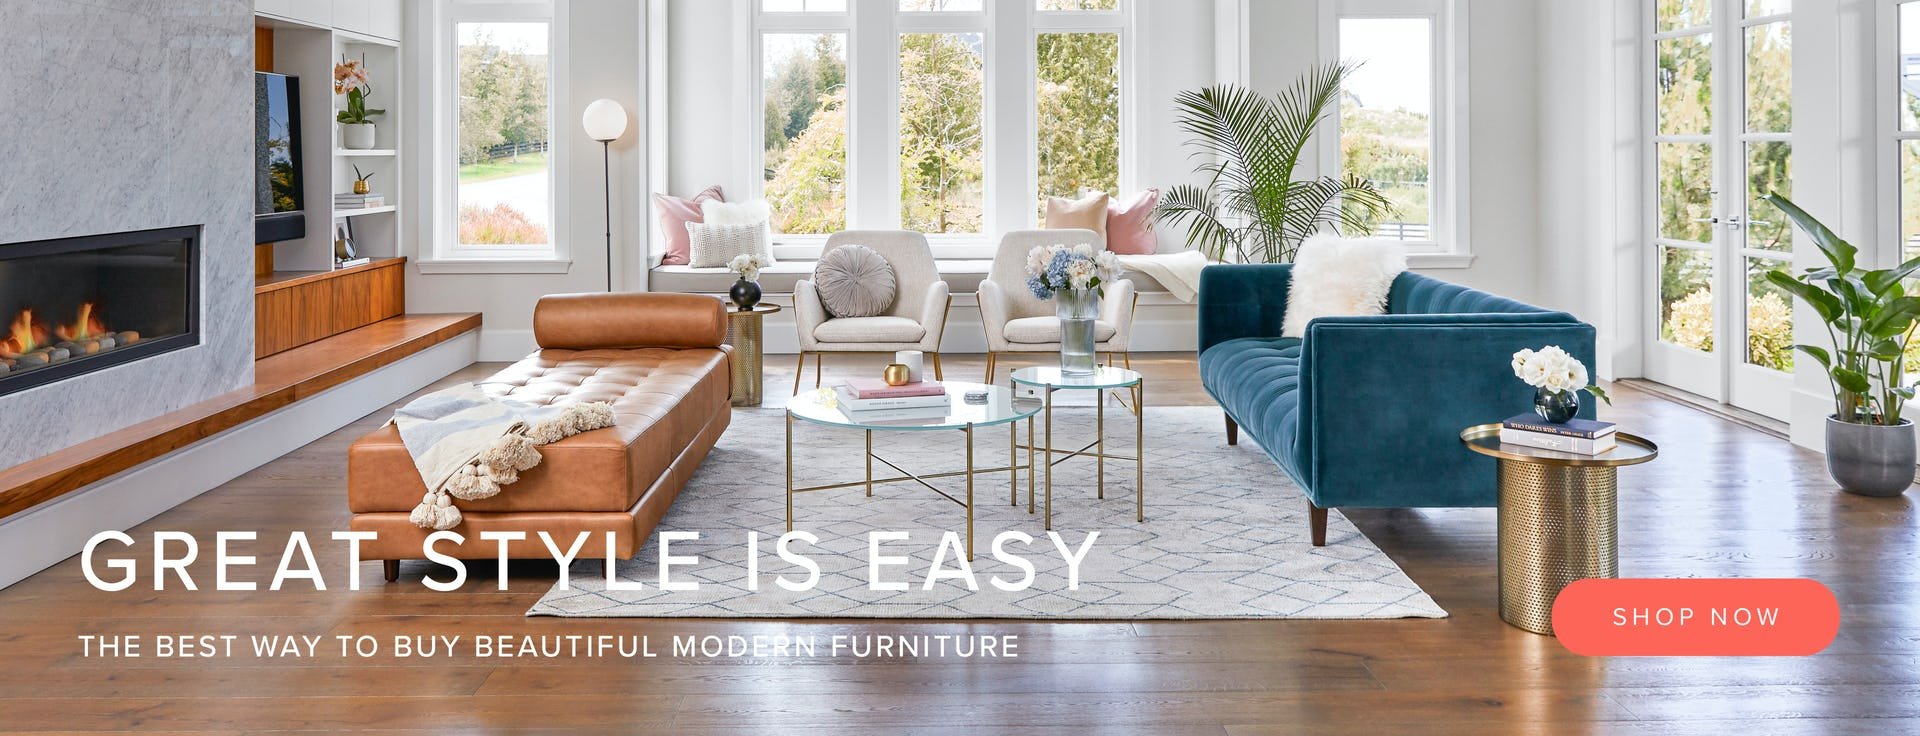 Amazing Article Modern Mid Century And Scandinavian Furniture Gmtry Best Dining Table And Chair Ideas Images Gmtryco